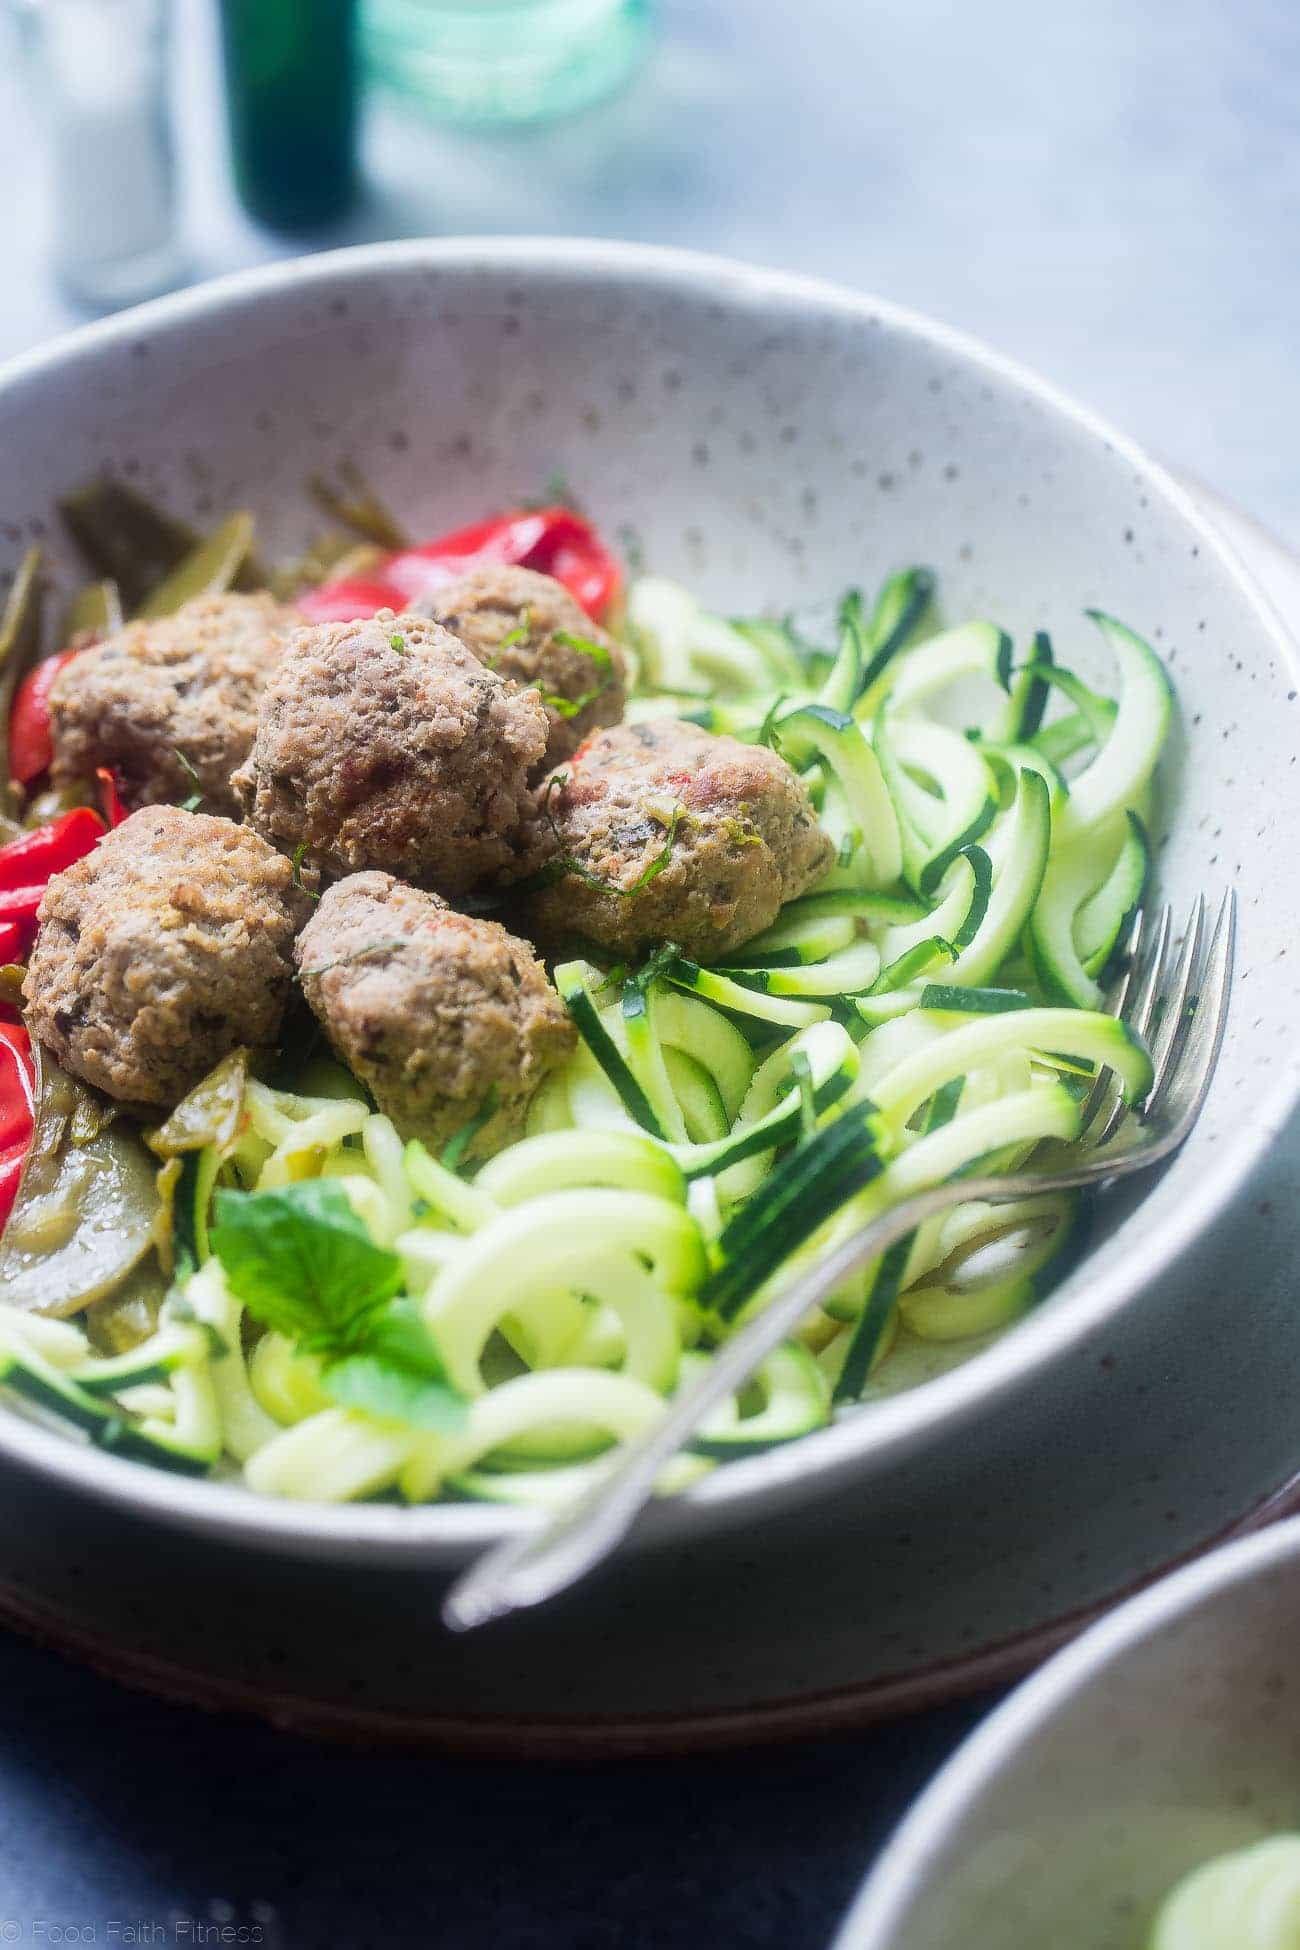 Whole30 Instant Pot Meatballs Primavera - These paleo chicken meatballs taste like pasta primavera! They're a healthy, gluten free and paleo spring meal for only 300 calories!   Foodfaithfitness.com   @FoodFaithFit